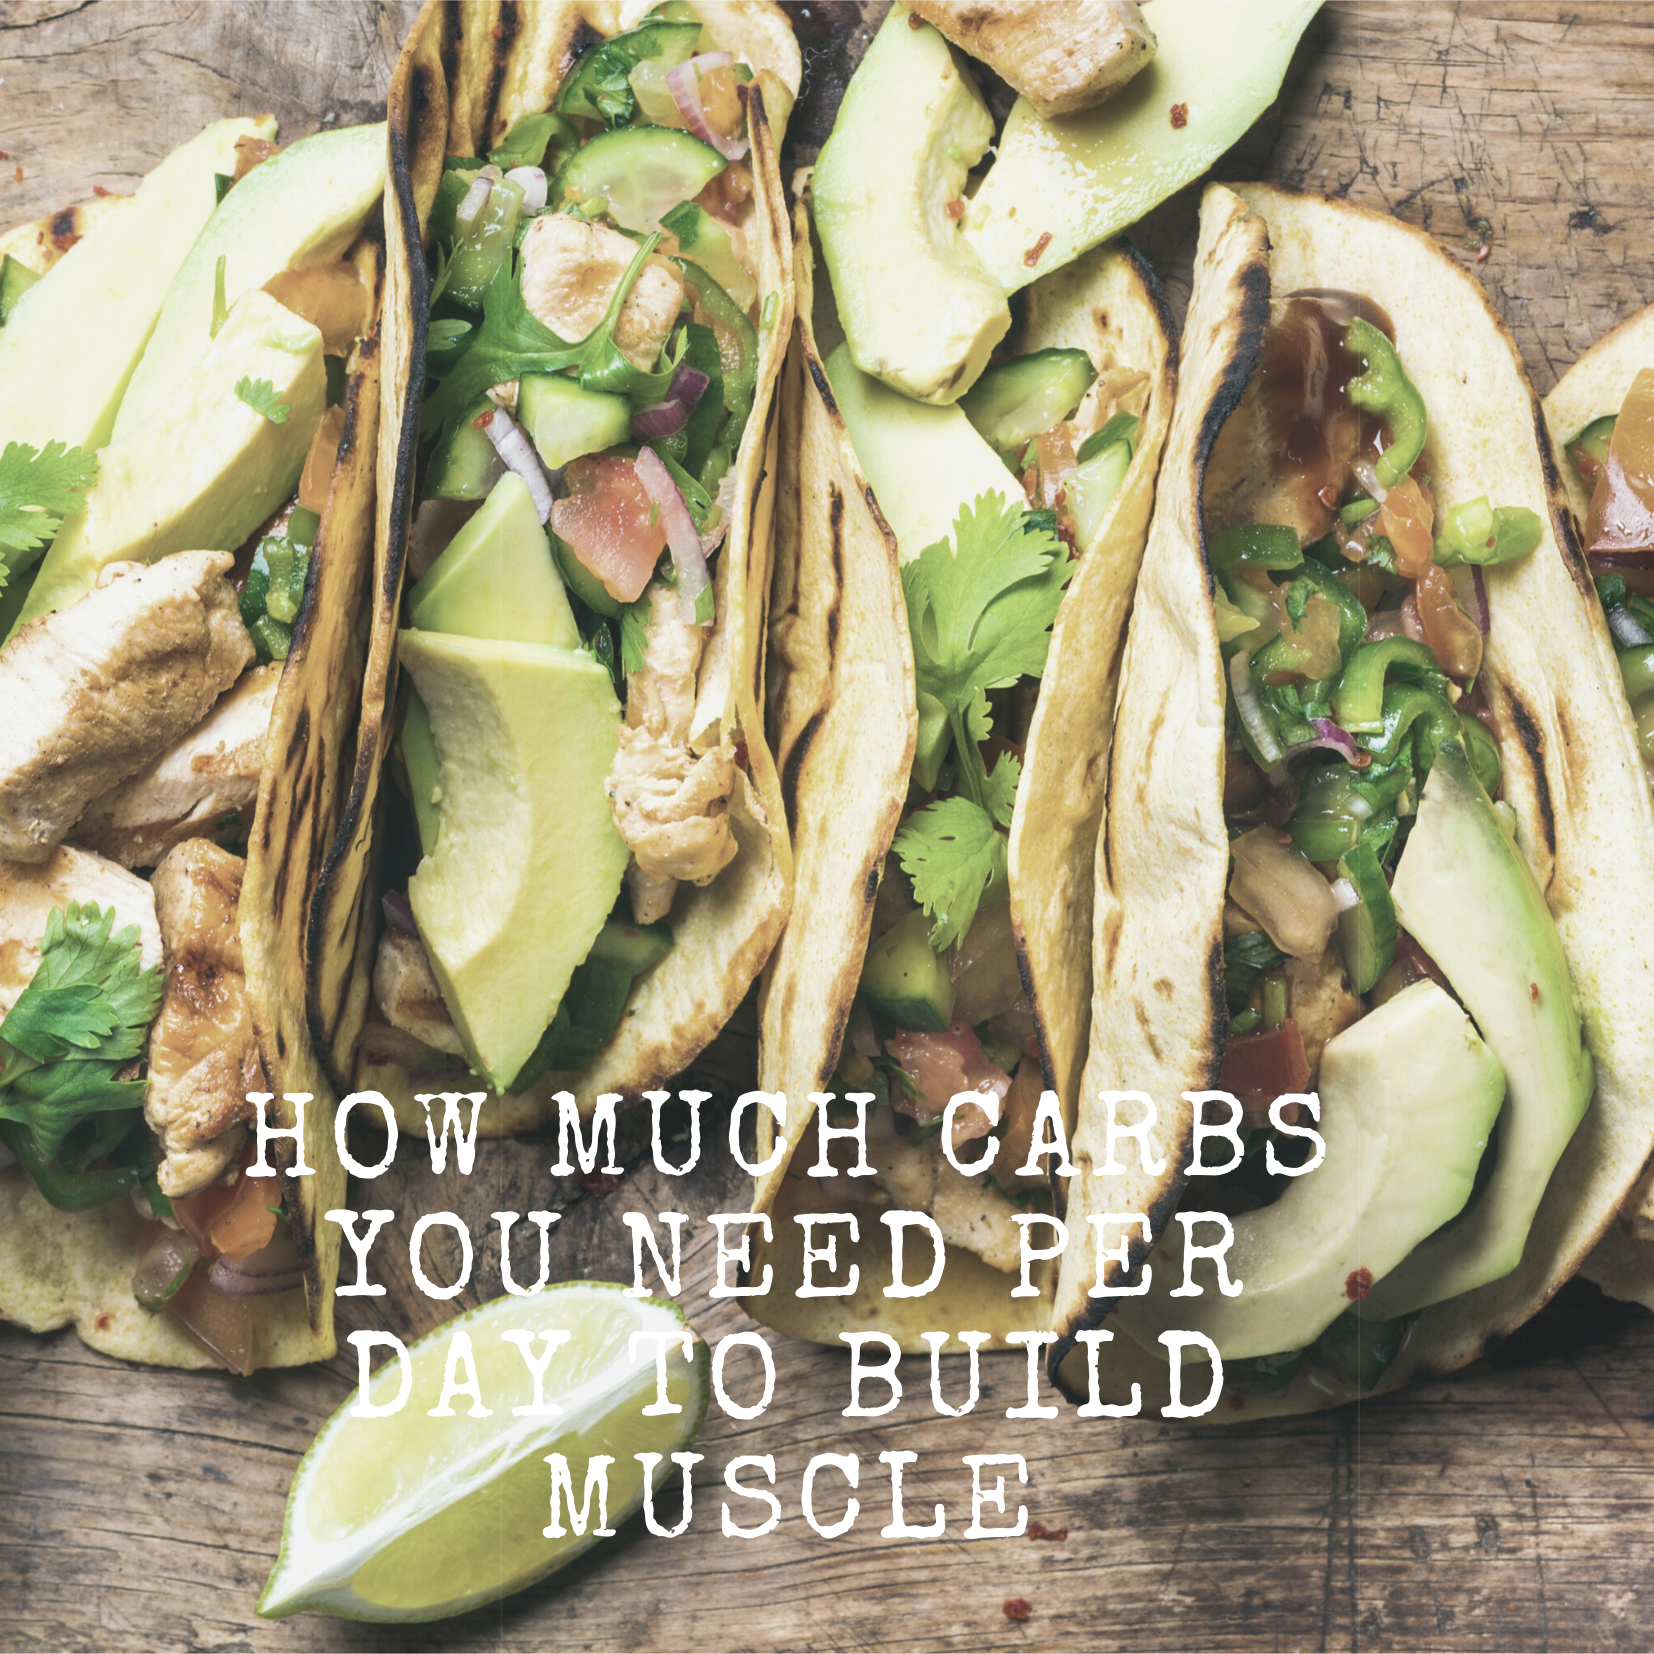 How Much Carbs You Need Per Day To Build Muscle